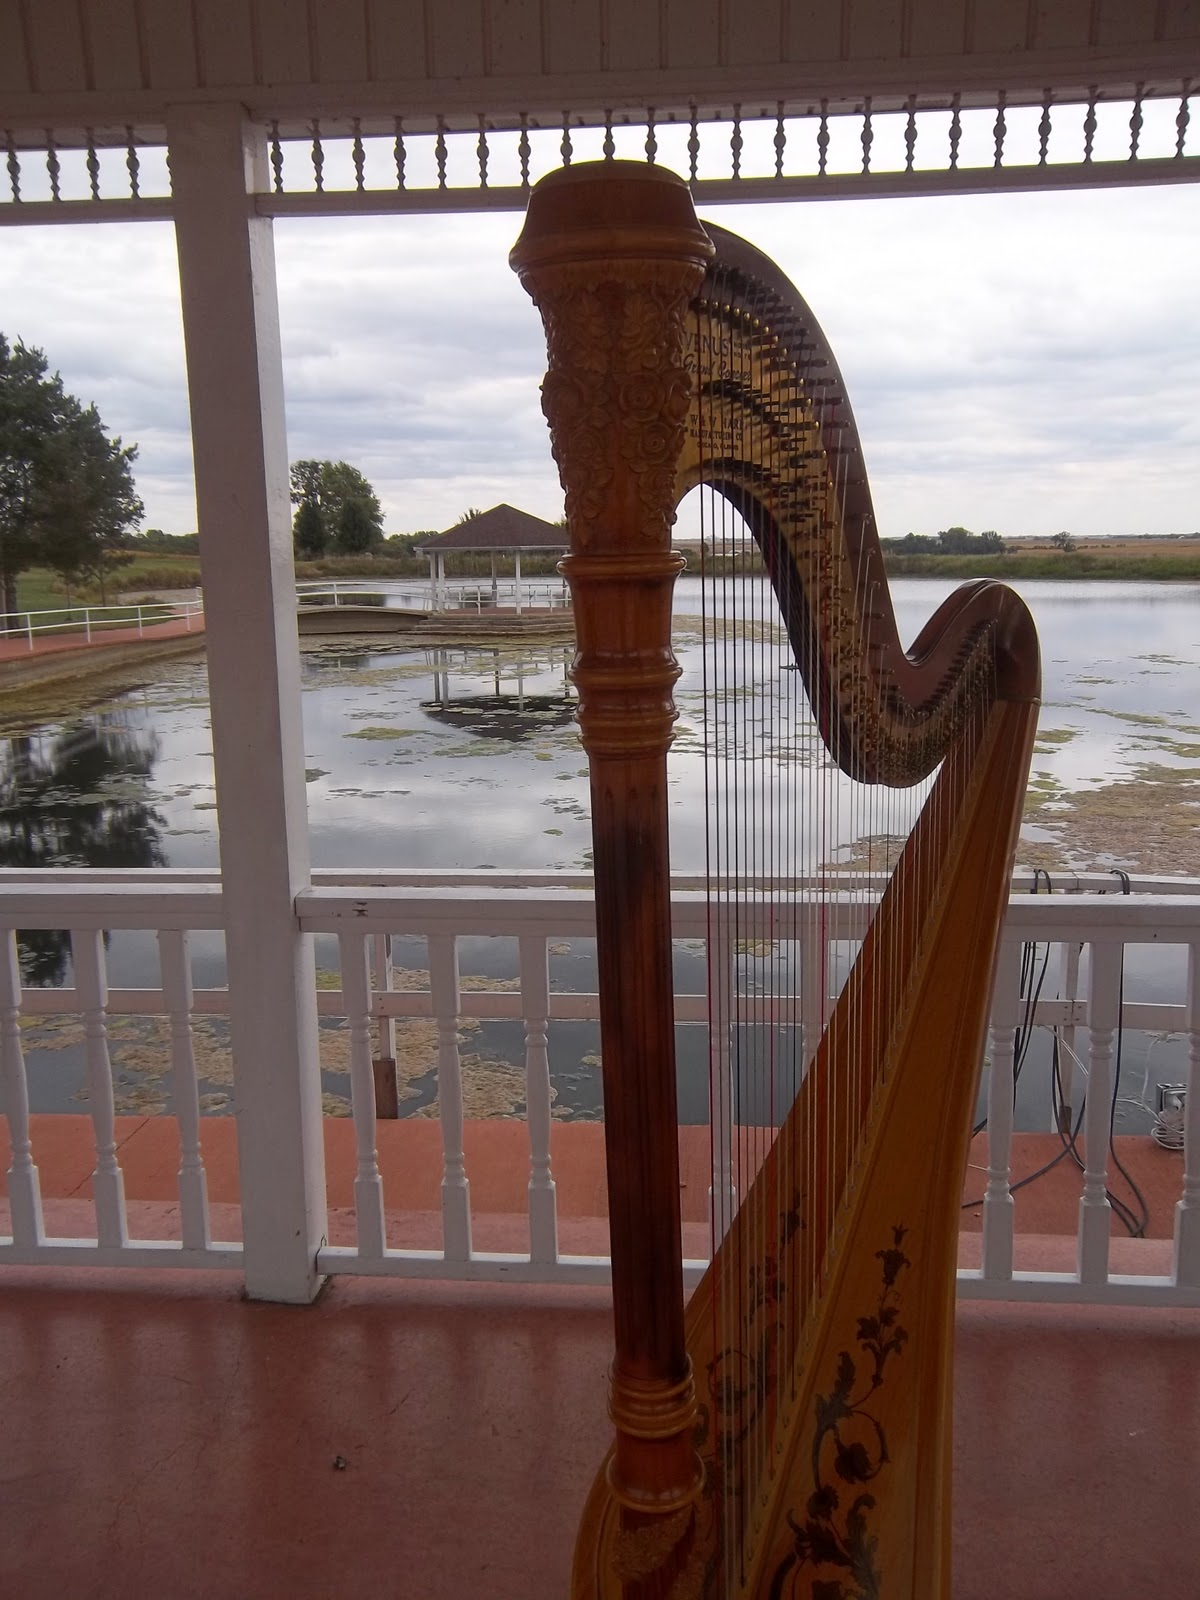 Unchained Melody; Your Song. For the entrance of the bridal party,